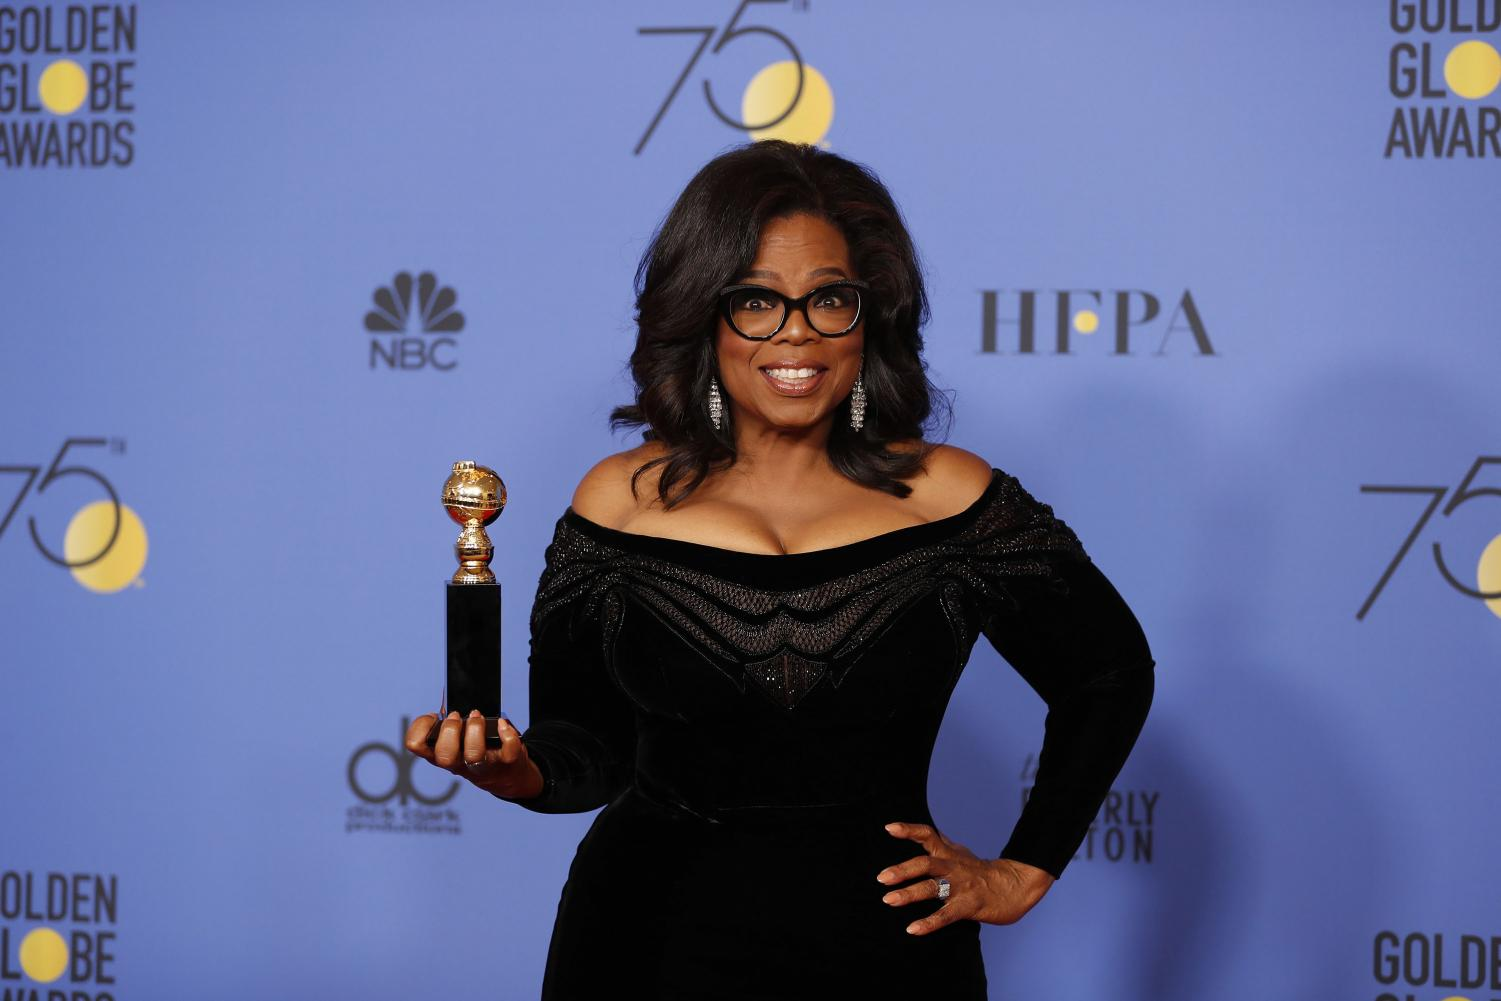 Oprah Winfrey backstage at the 75th Annual Golden Globes at the Beverly Hilton Hotel in Beverly Hills, Calif., on Jan. 7, 2018. Columnist Alice stresses award shows should remain political, especially for important social movements.